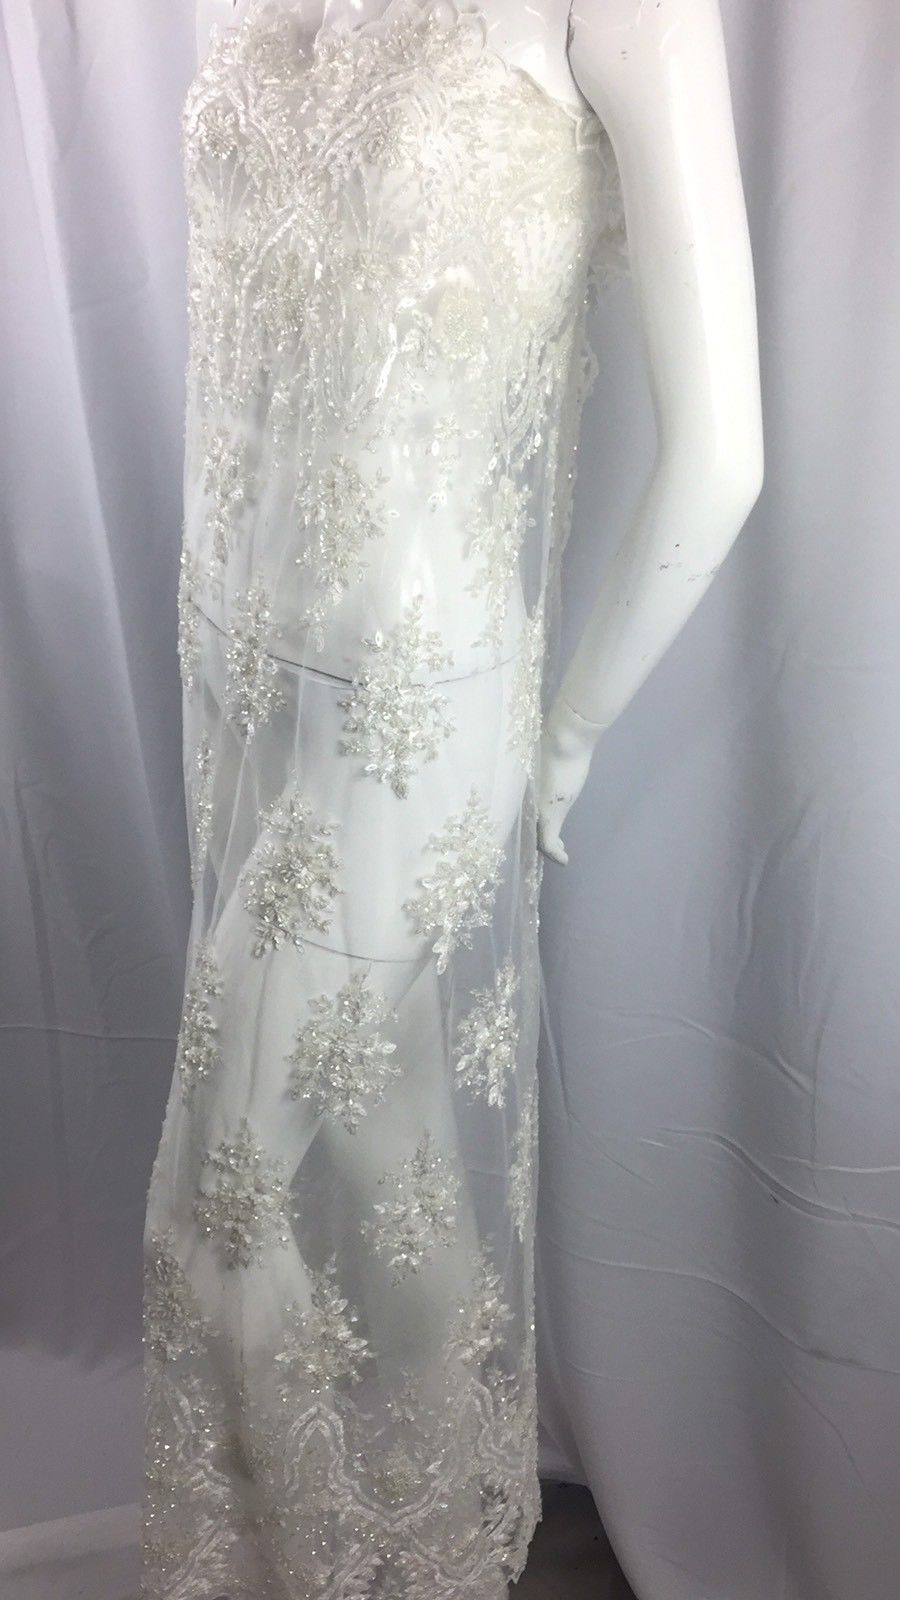 Beaded fabric - Embroidered Mesh Squin Ivory Bridal Veil & Wedding By The Yard - KINGDOM OF FABRICS